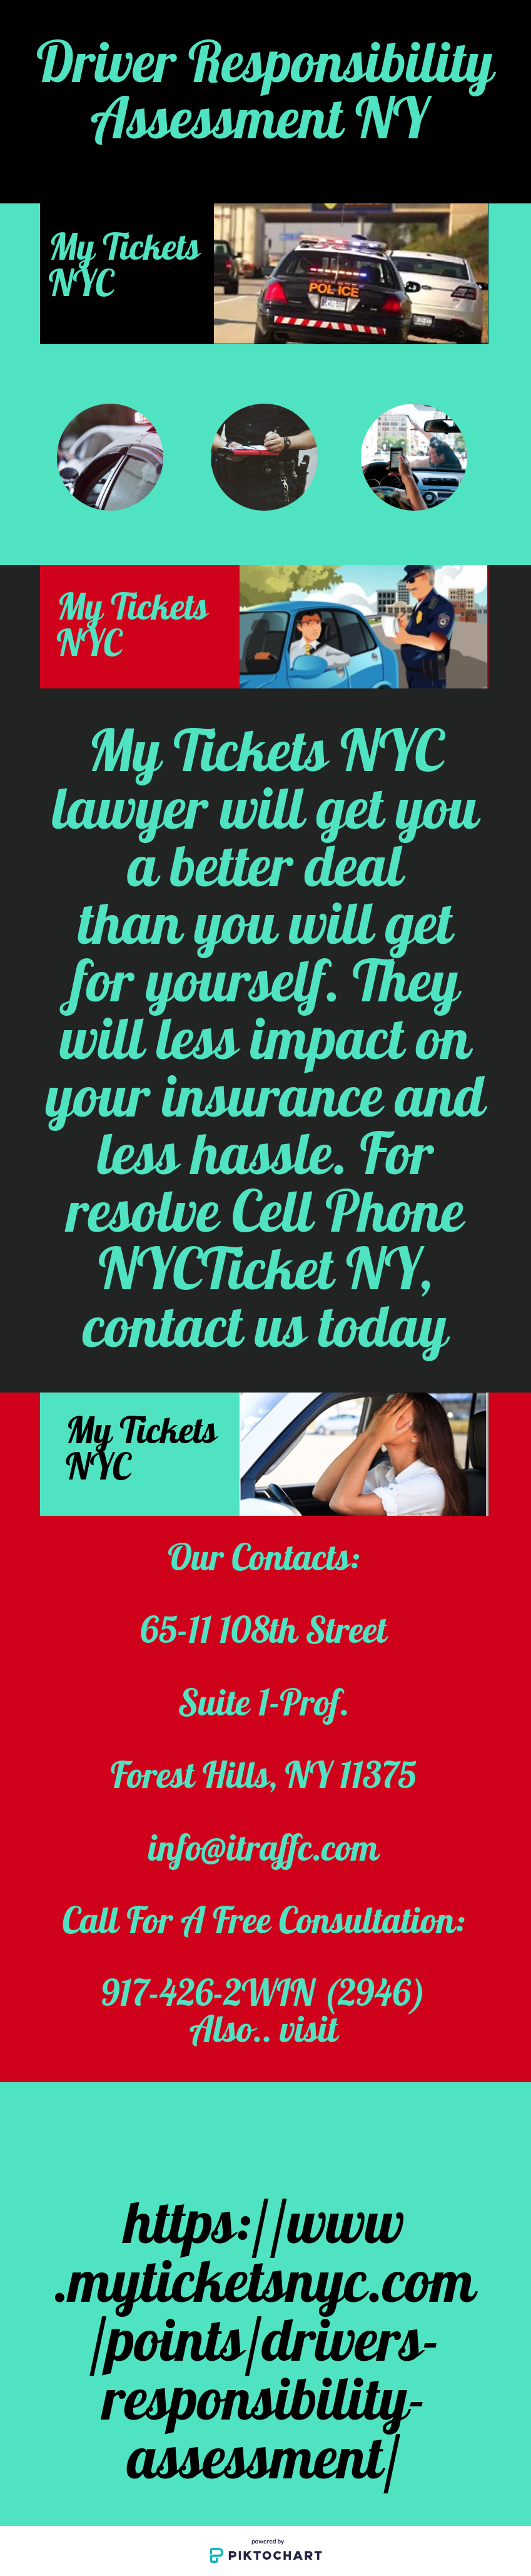 If You Receive Driver Responsibility Assessment Ny Tickets My Tickets Nyc Can Help We Are Here To Help You Develop The Assessment Drivers License No Response